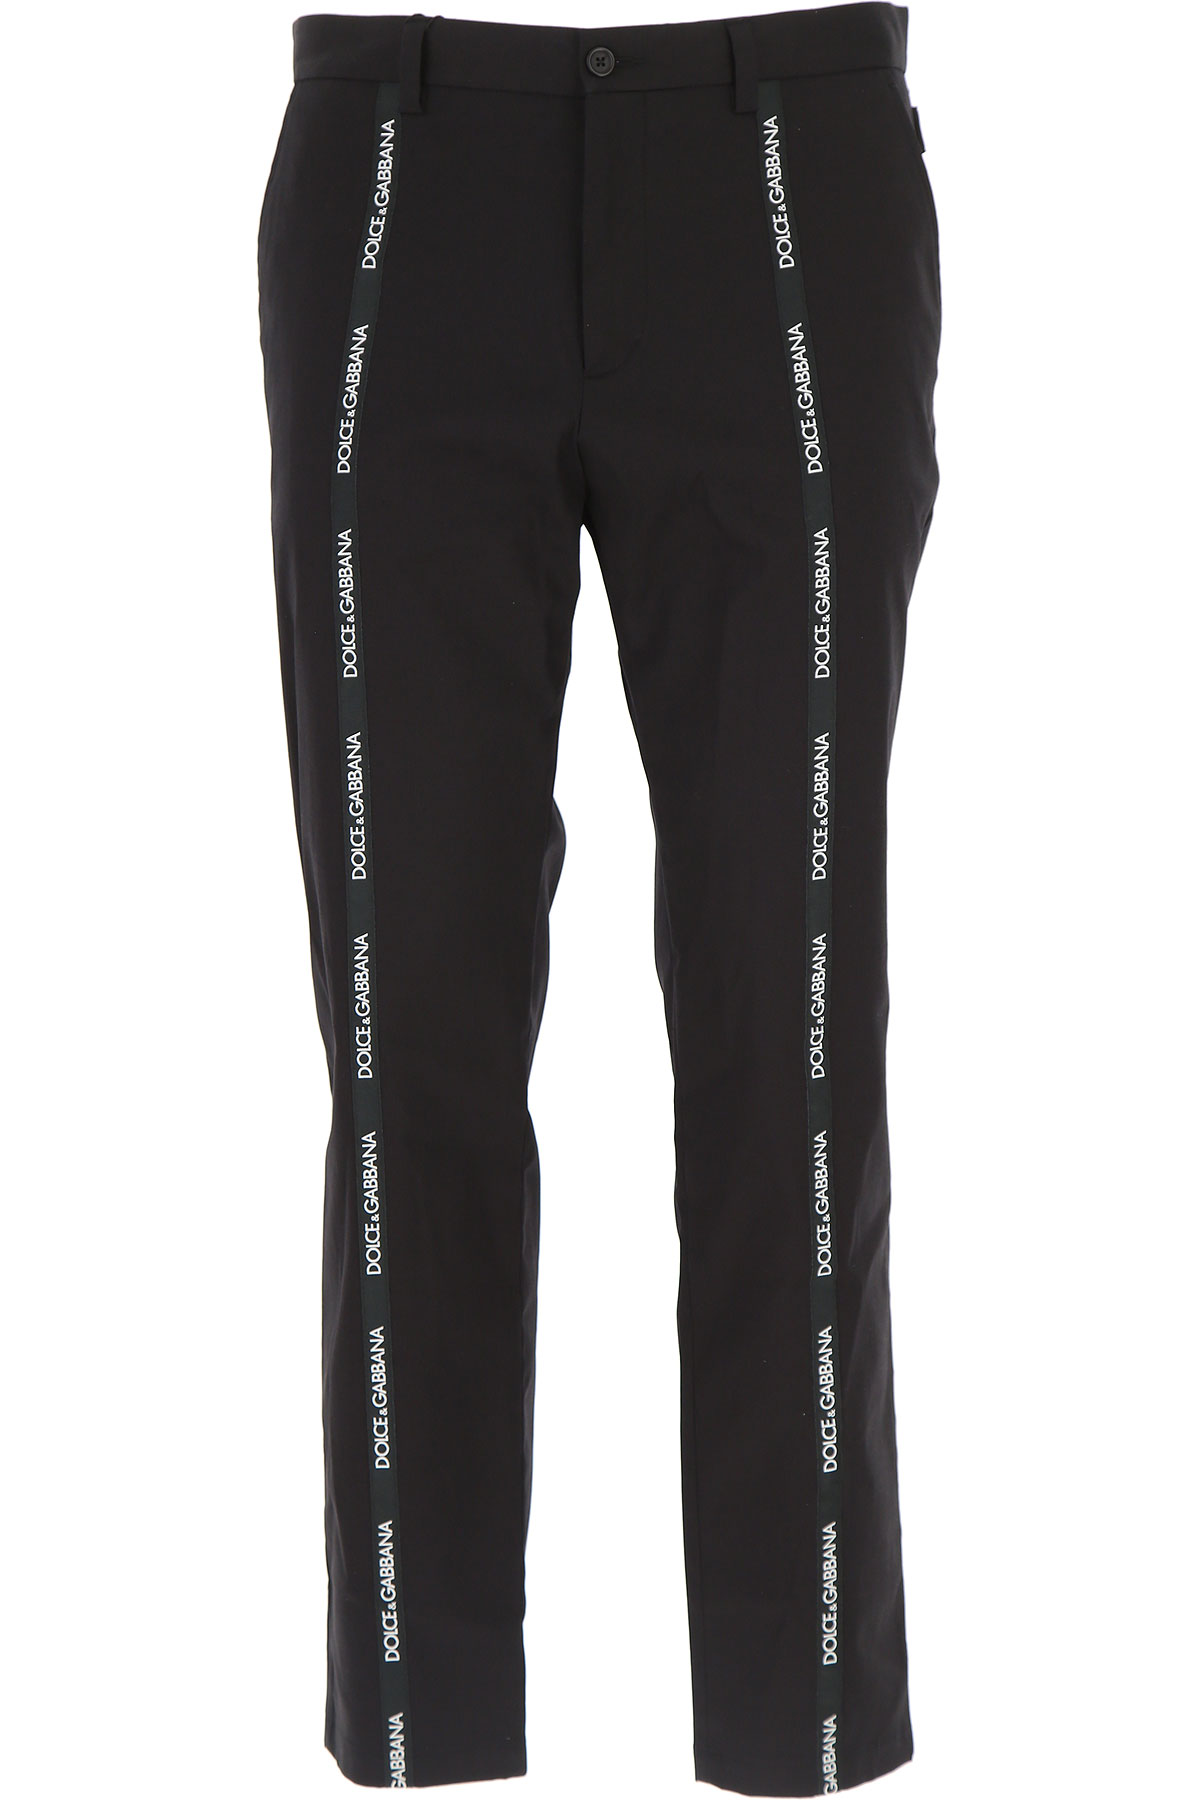 Dolce & Gabbana Pants for Men On Sale, Black, Cotton, 2017, 30 32